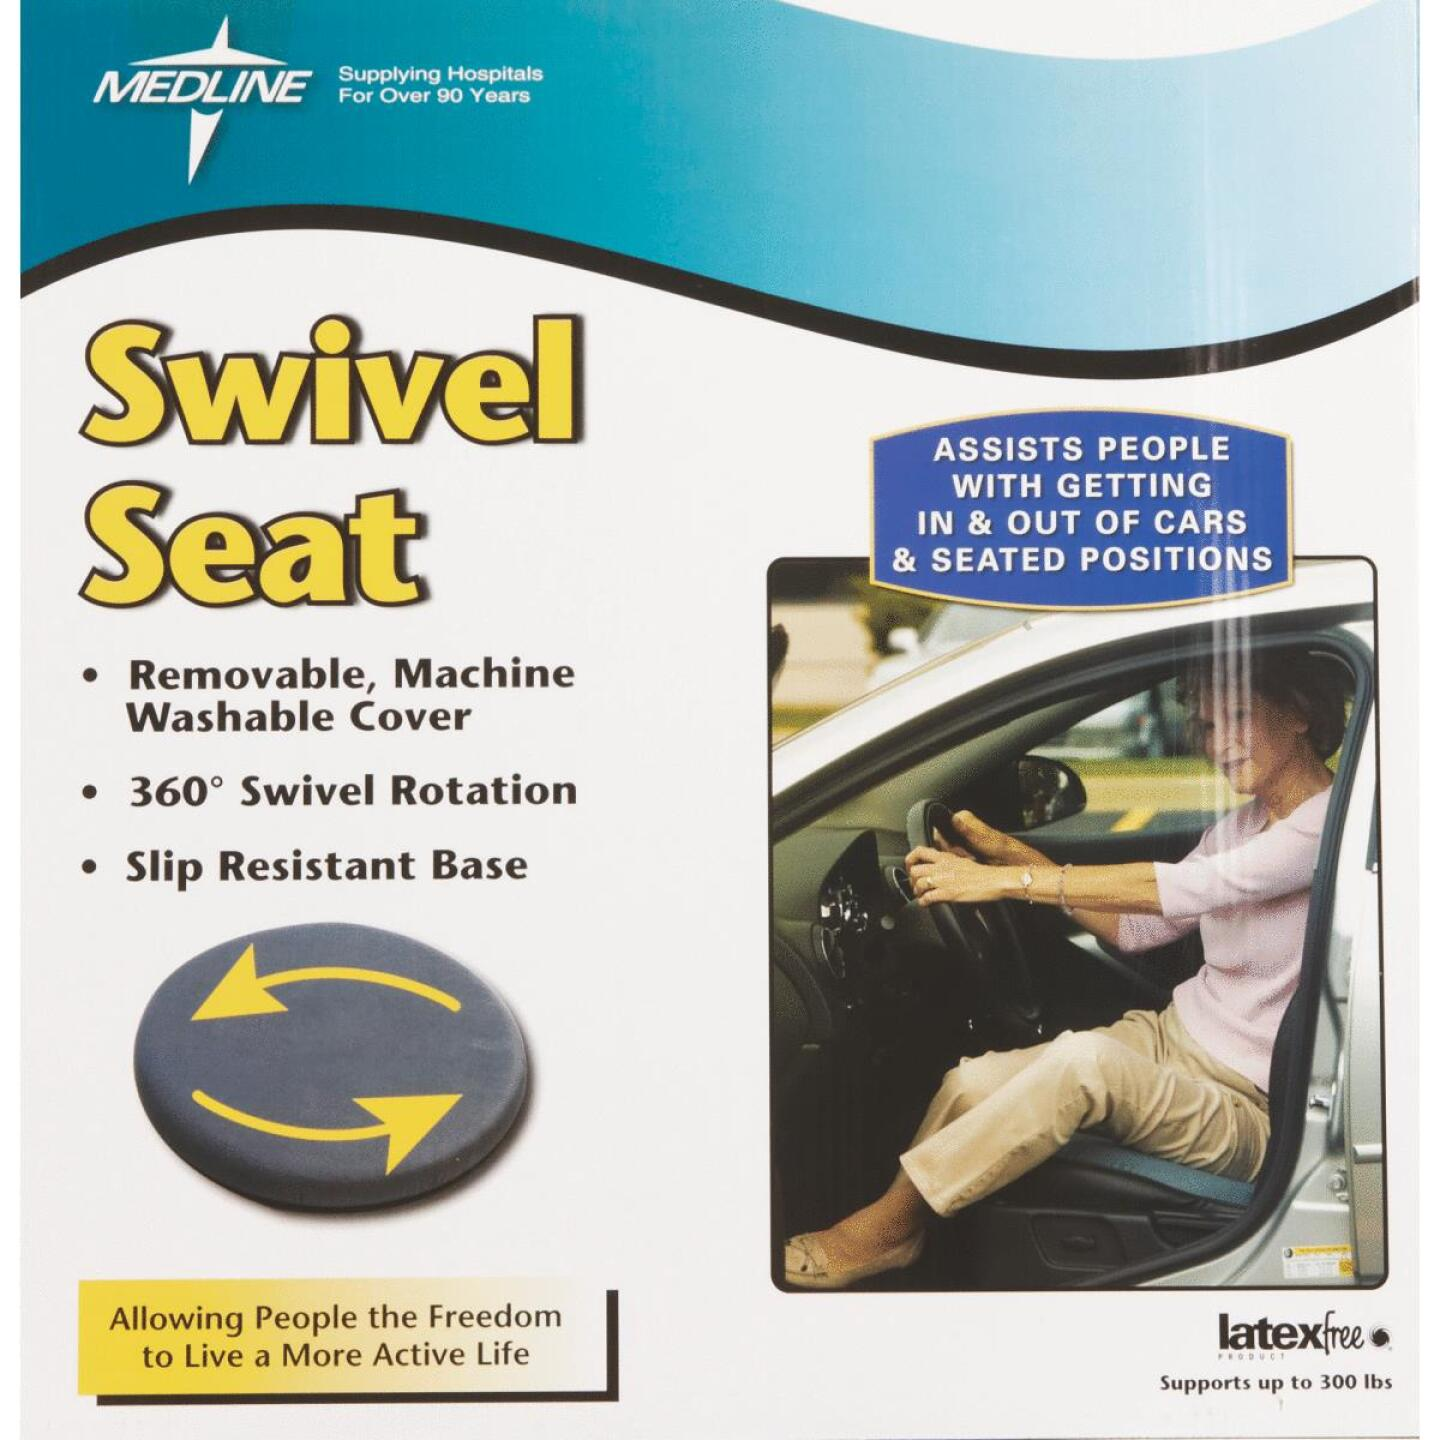 Medline Swivel Seat Image 2